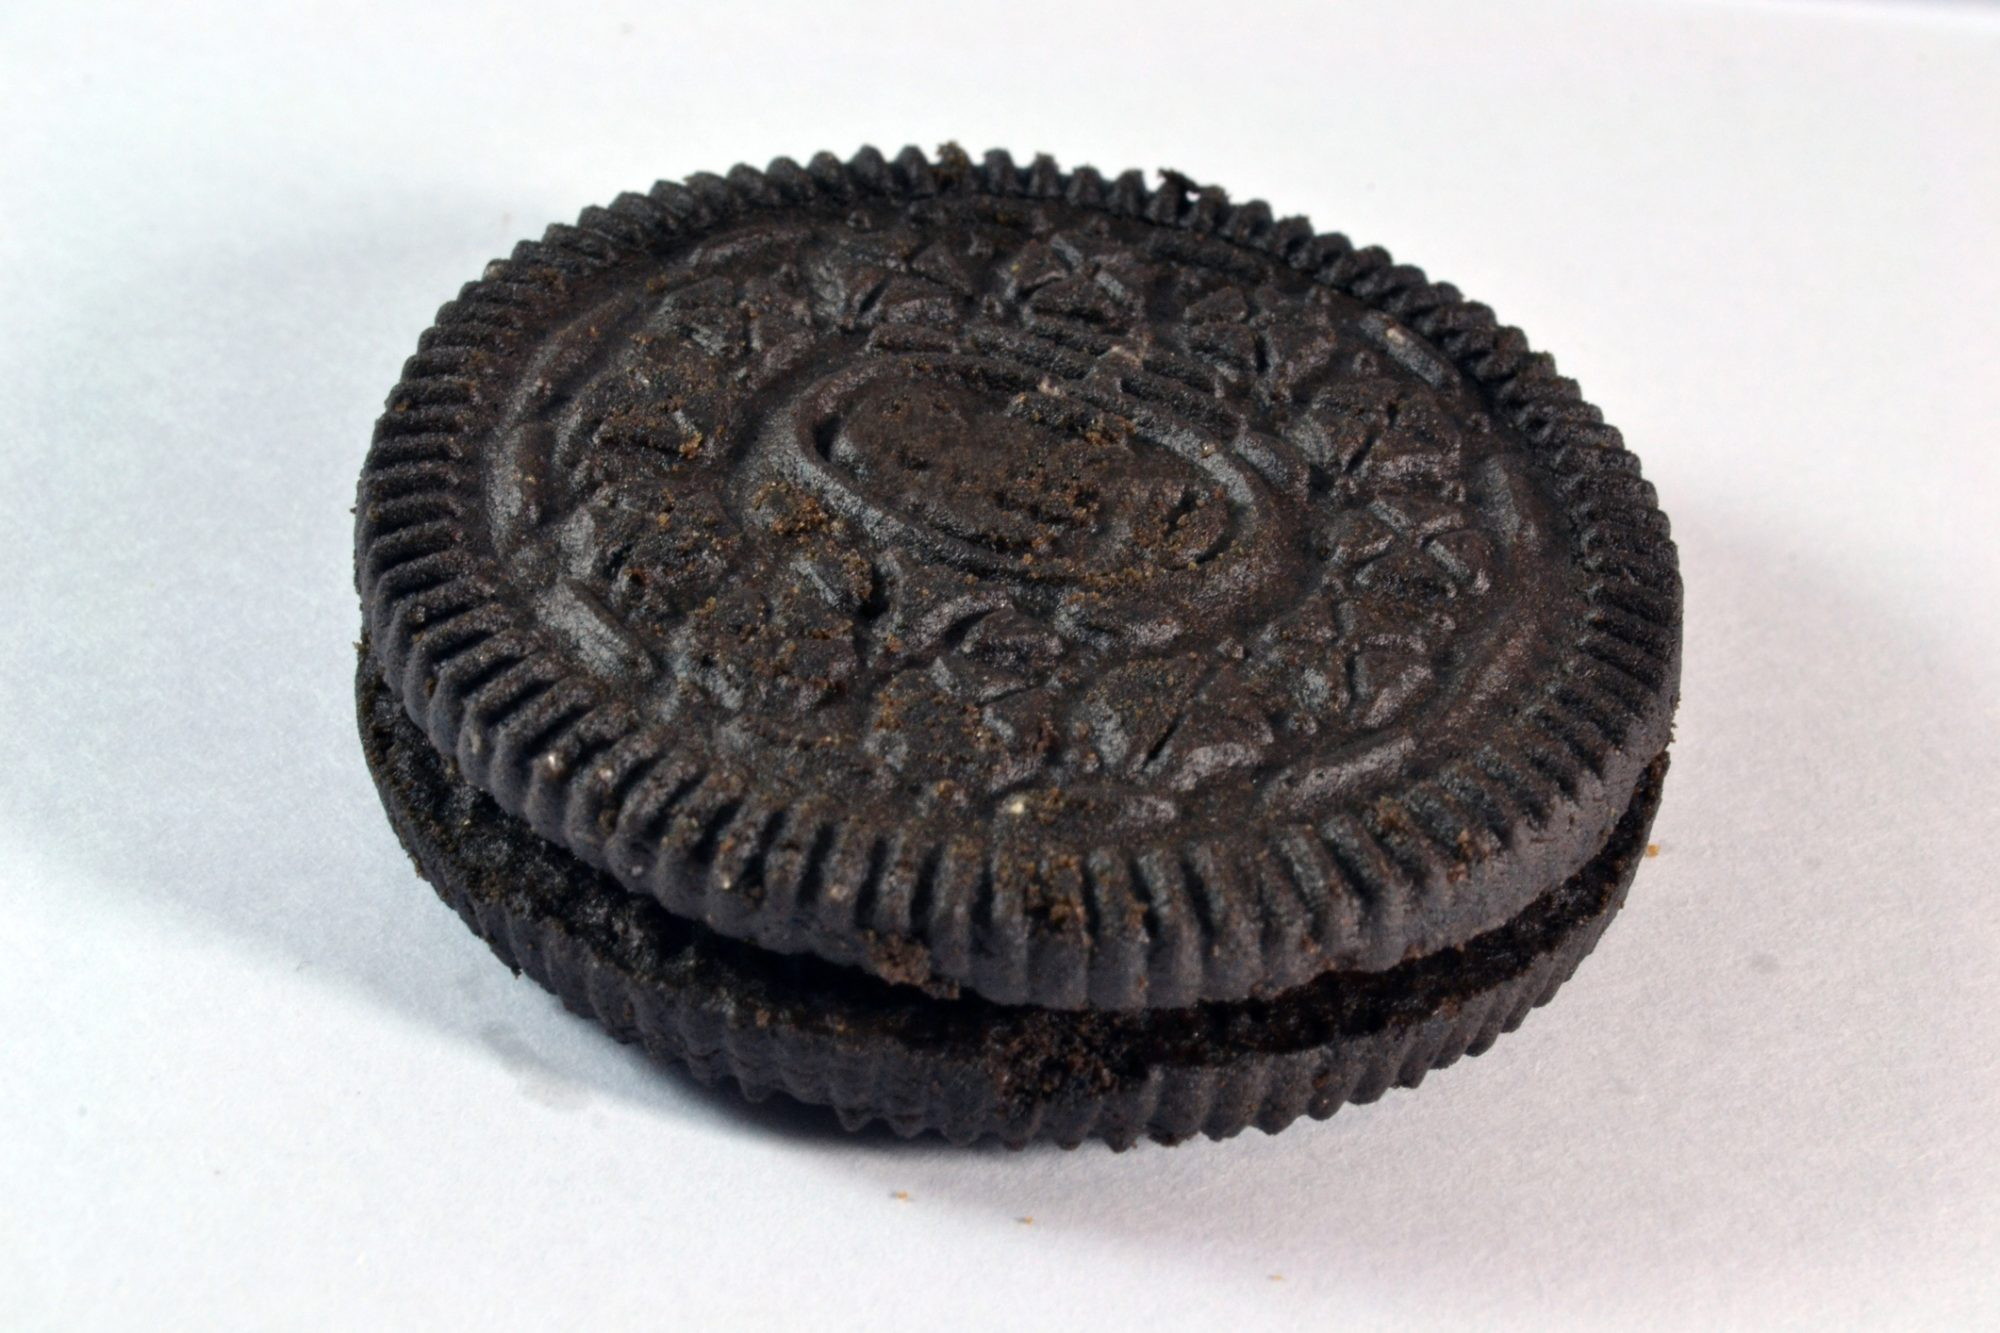 Do Most Stuf Oreos Have Too Much Stuf Or Just Enough?